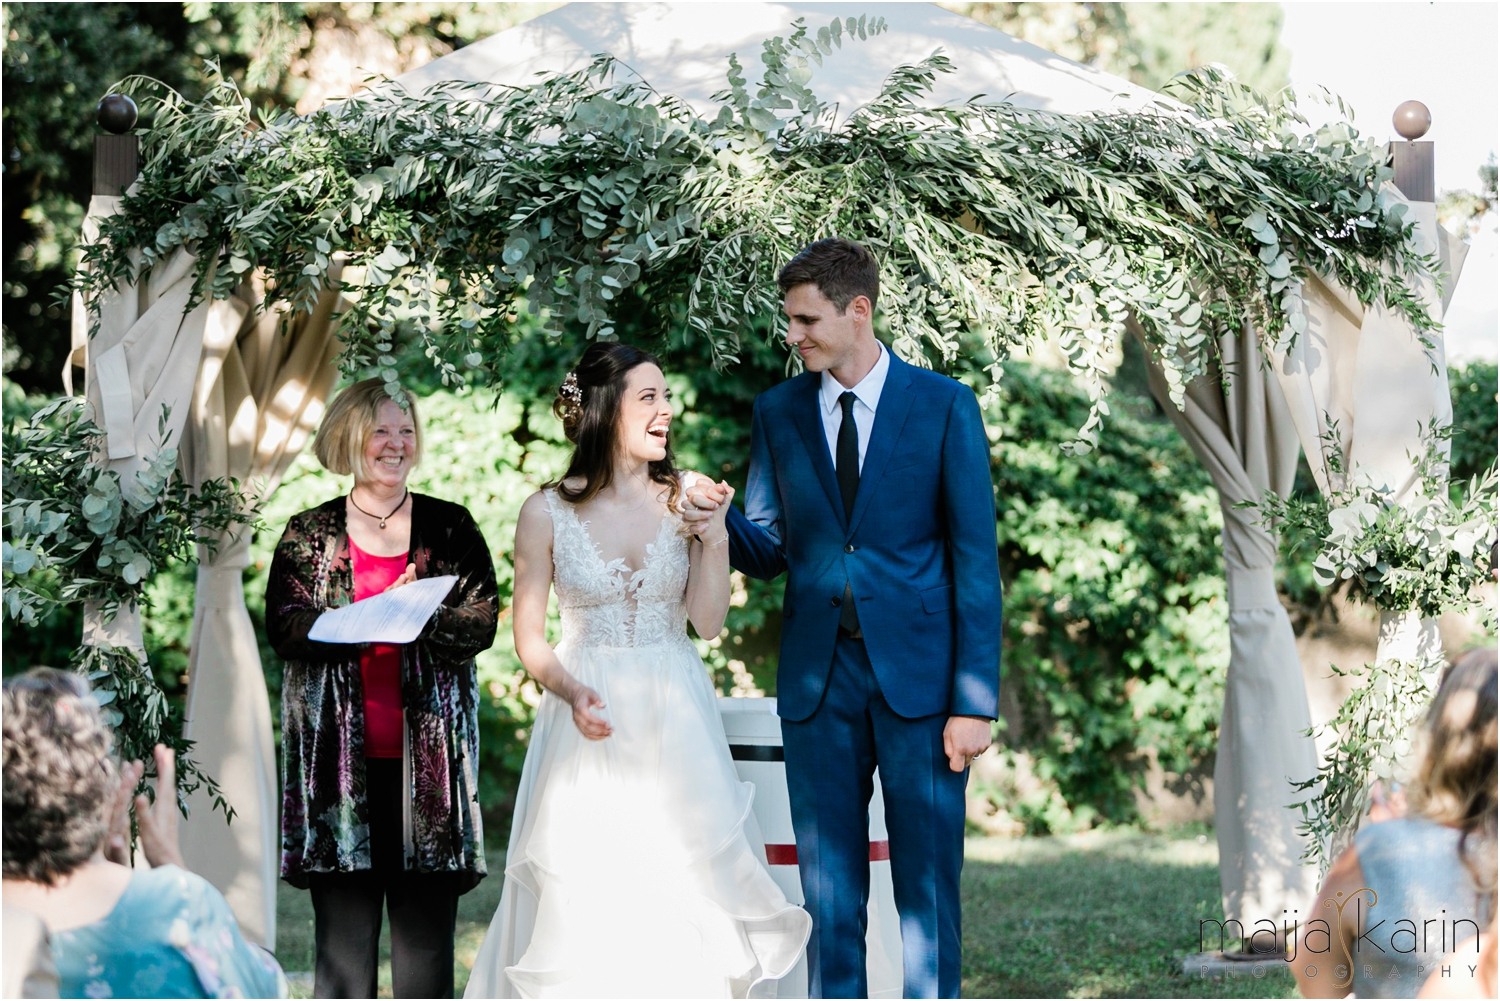 Castelvecchi-Tuscany-Wedding-Maija-Karin-Photography_0034.jpg